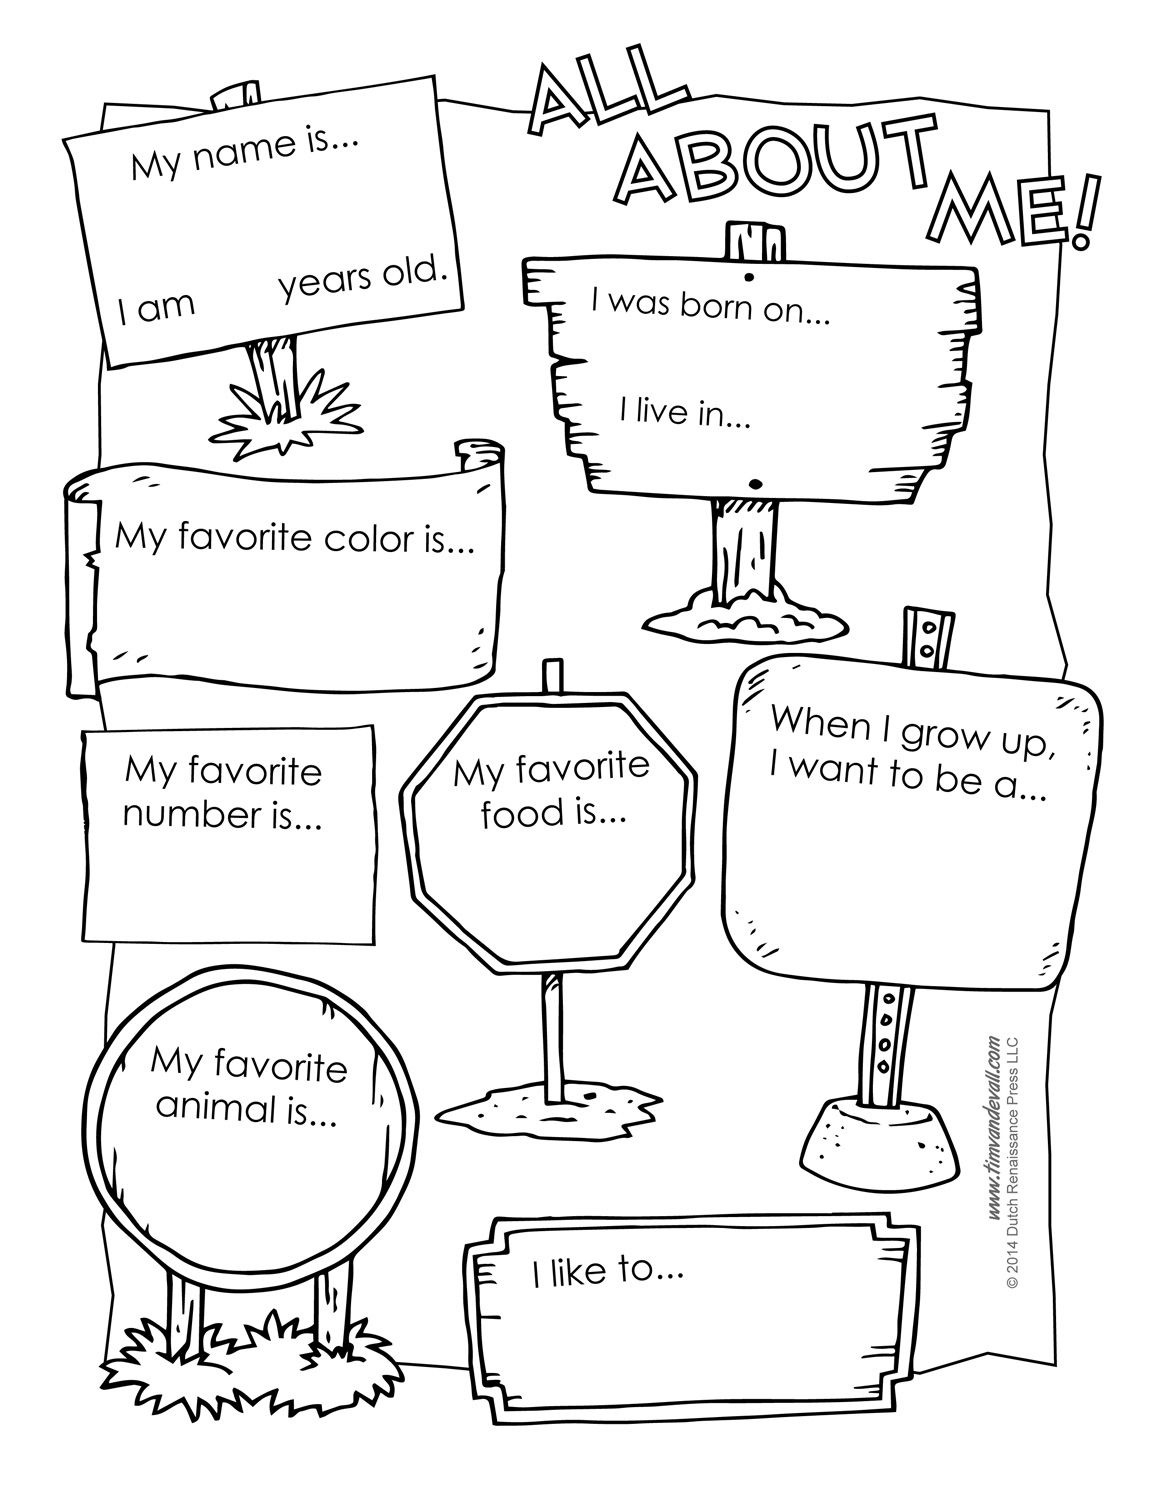 All About Me Free Workshet … | Social Emotional Learning | All A… | All About Me Printable Worksheets